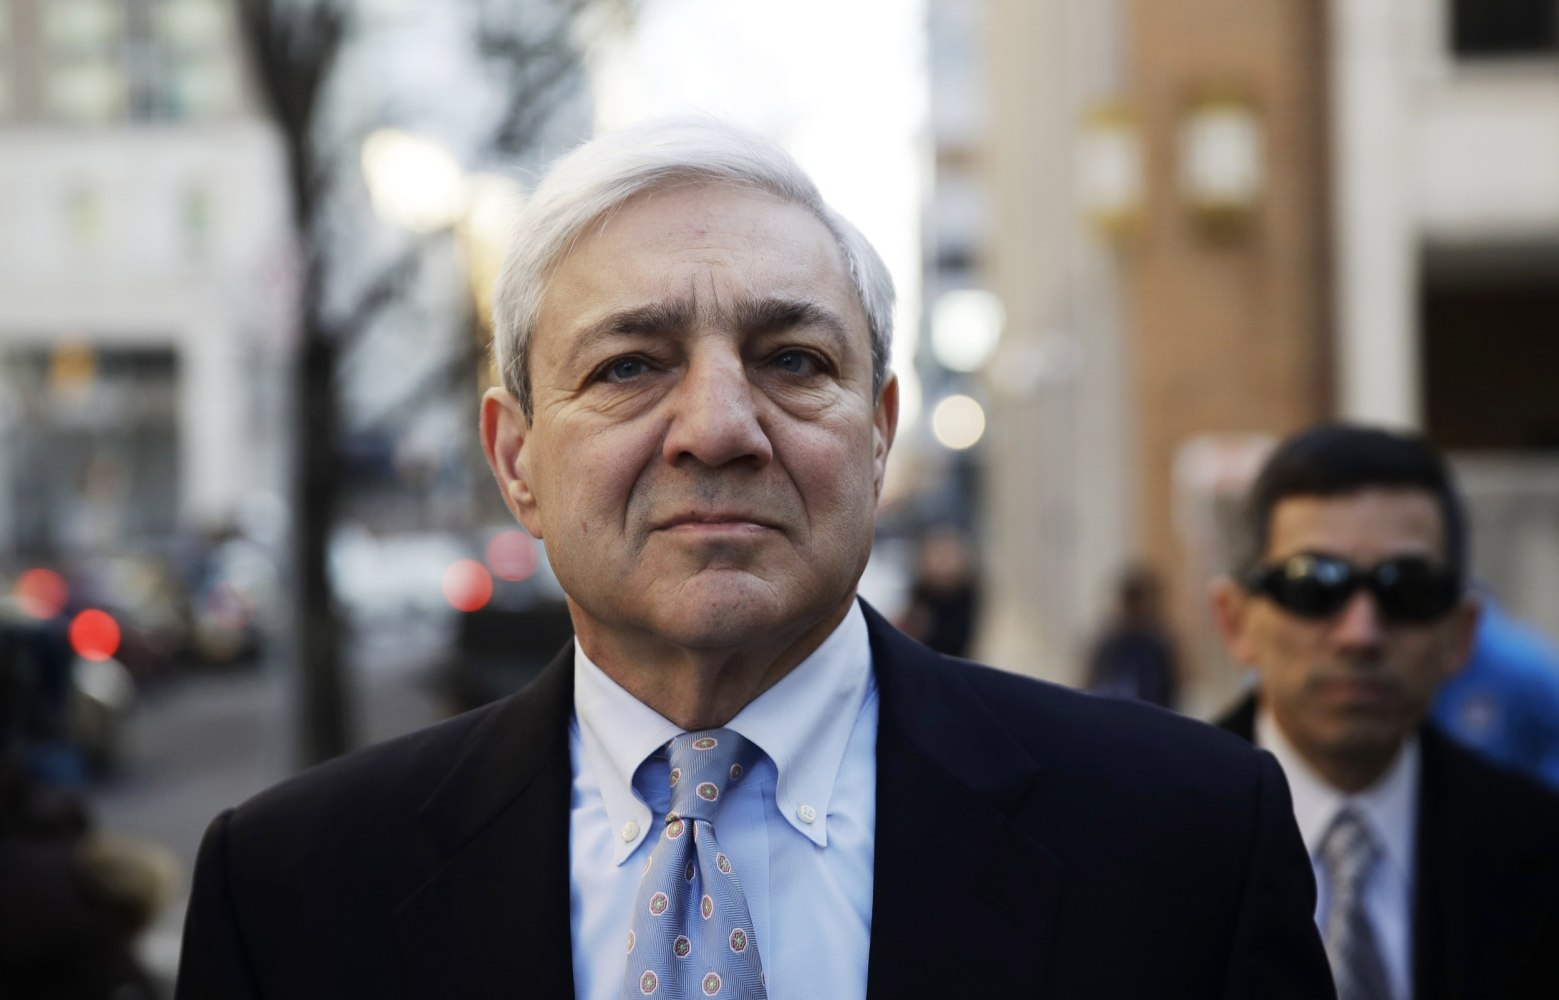 Ex-Penn State President Guilty On One Count Of Child Endangerment